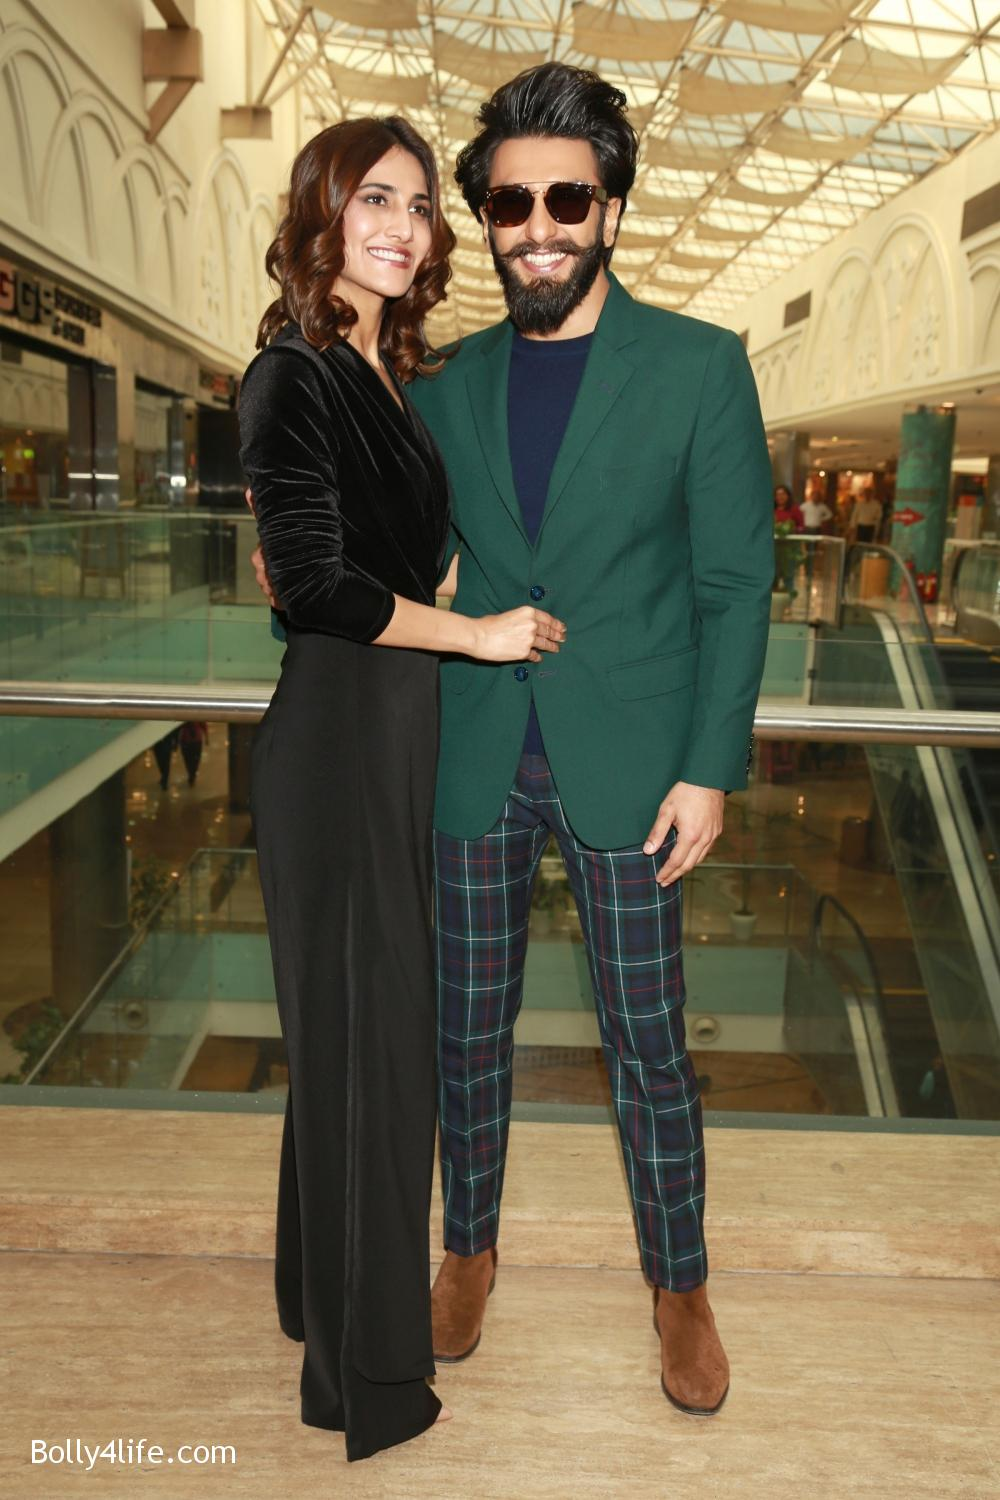 Ranveer-Singh-and-Vaani-Kapoor-during-the-promotion-of-their-upcoming-film-Befikre-12.jpg